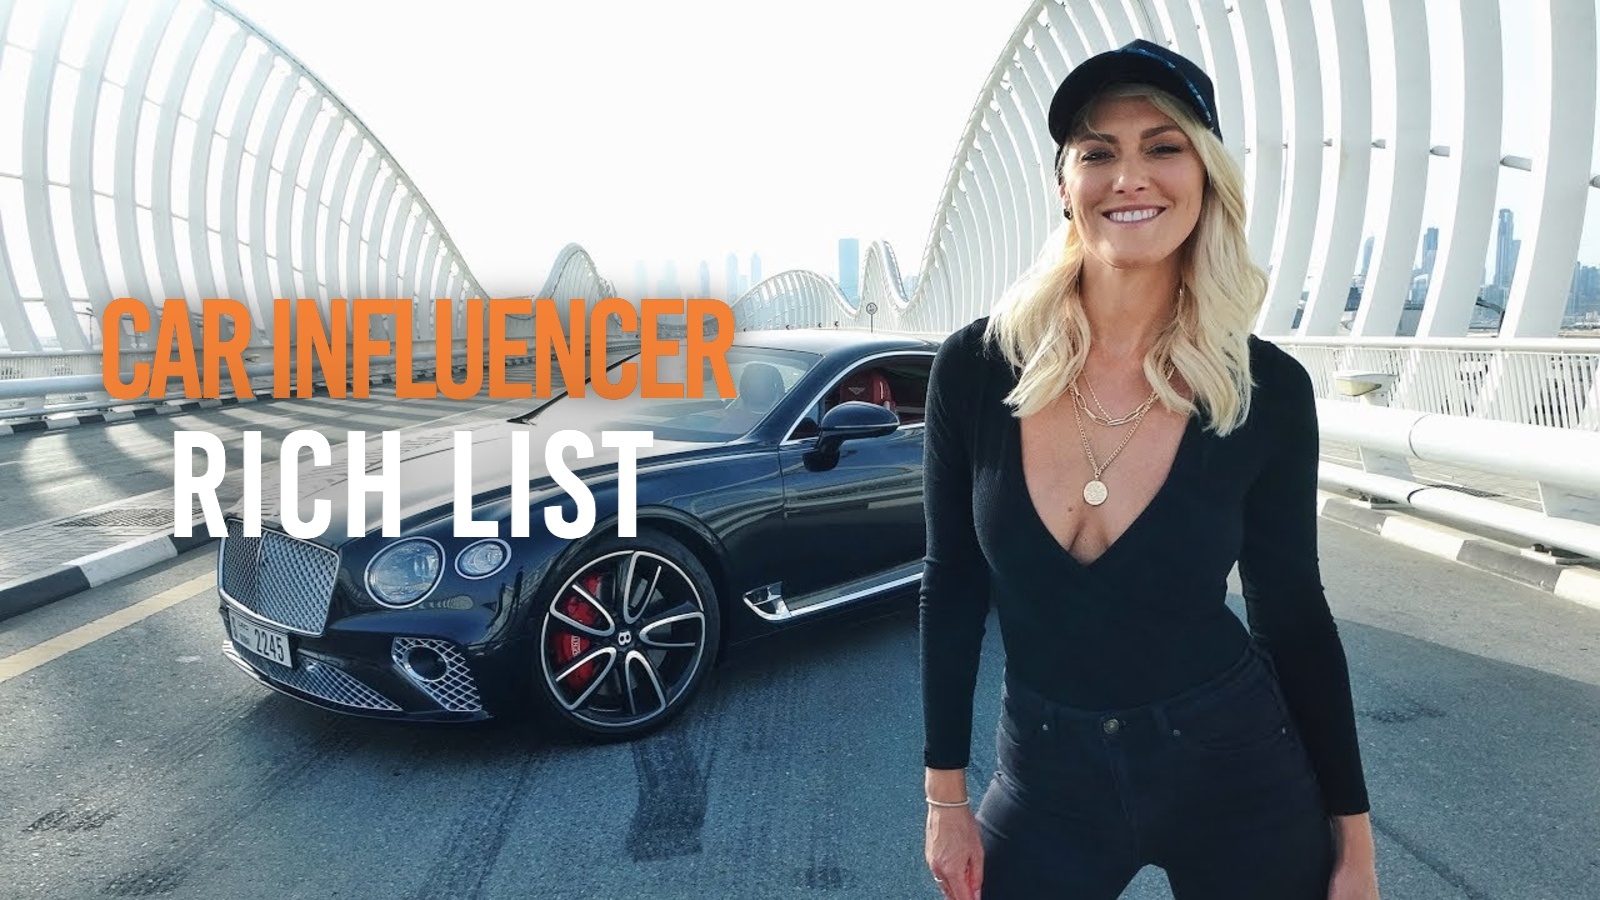 Supercar Blondie with Bentley Continental, car influencer rich list